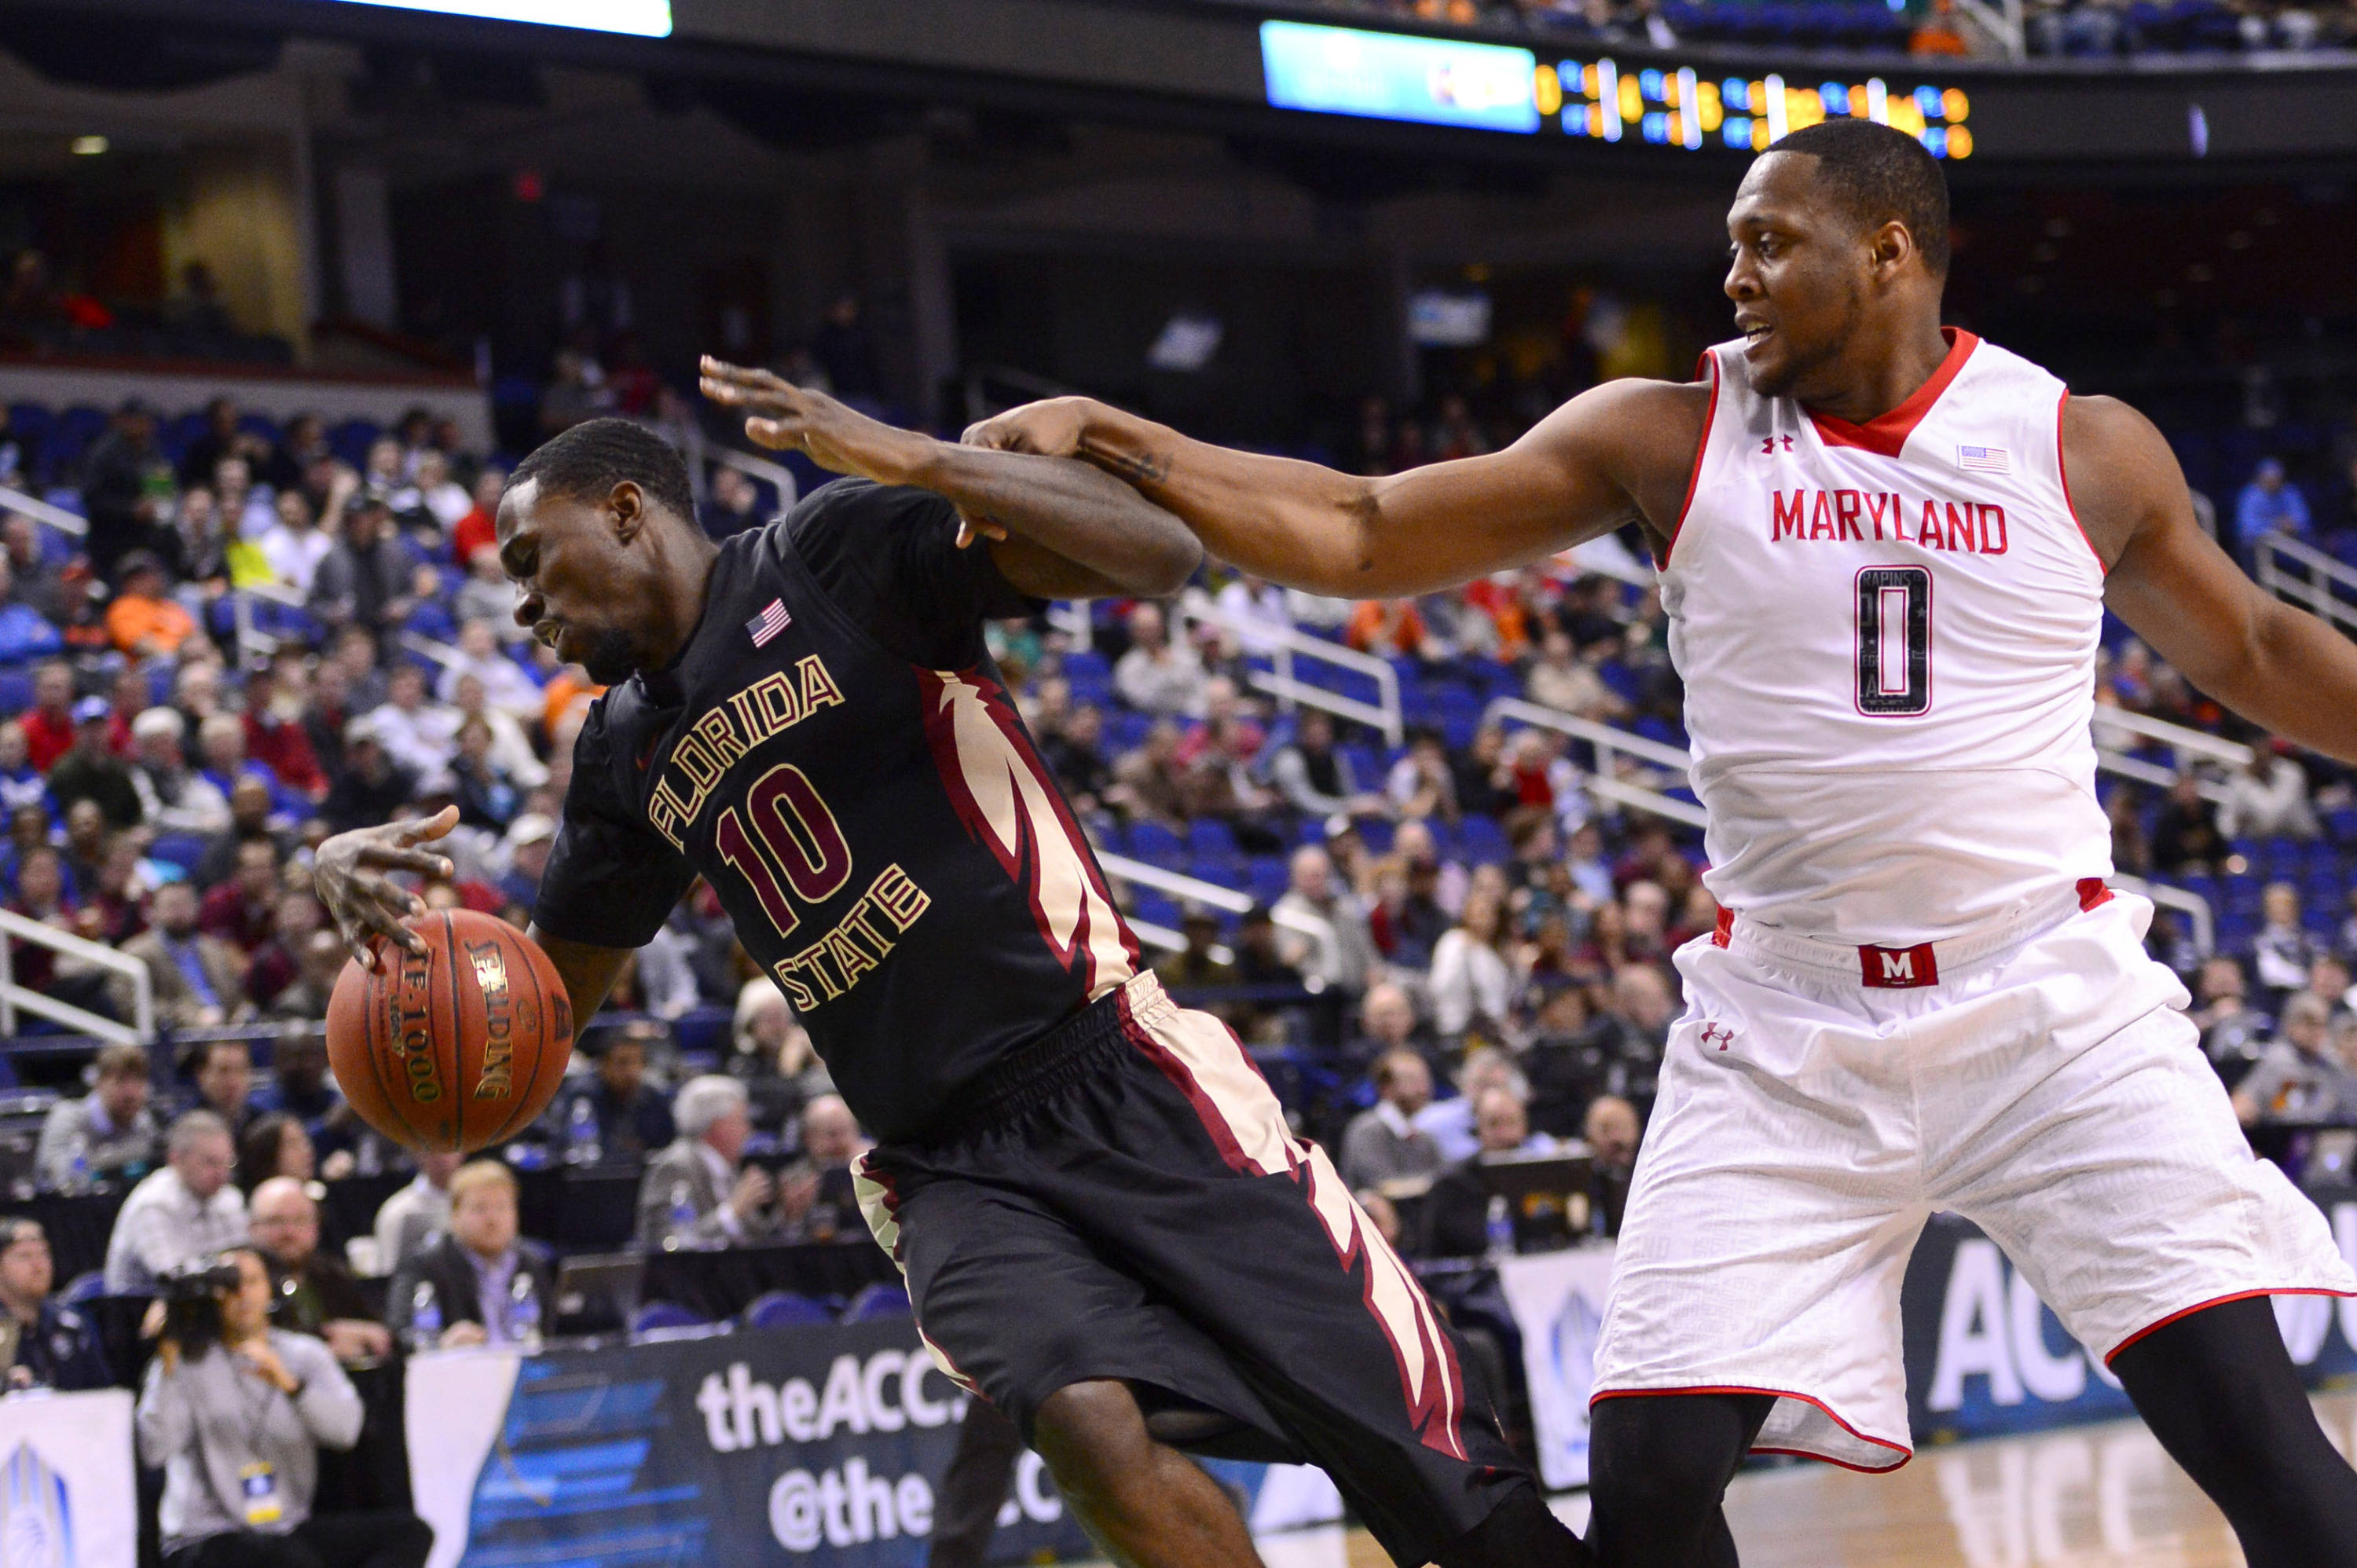 Florida State Seminoles forward Okaro White (10) and Maryland Terrapins forward Charles Mitchell (0) fight for the ball in the first half in the second round of the ACC college basketball tournament at Greensboro Coliseum. Mandatory Credit: Bob Donnan-USA TODAY Sports